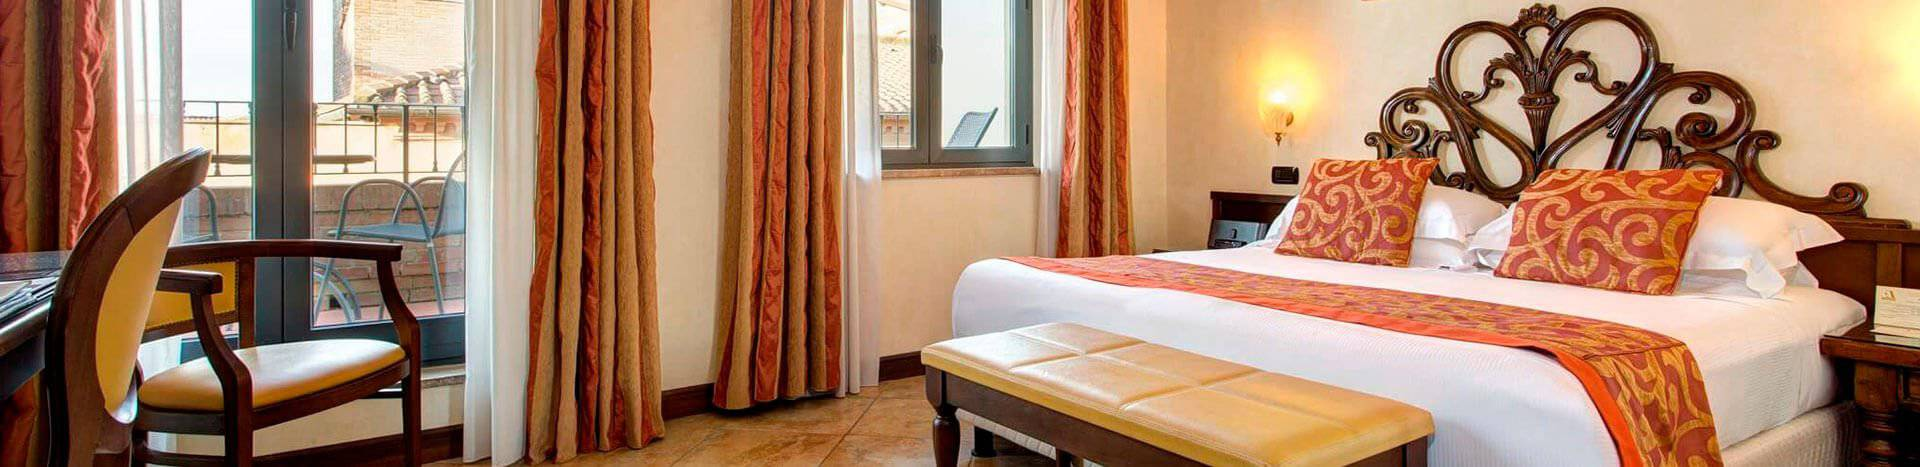 Space Hotels - SIENA -